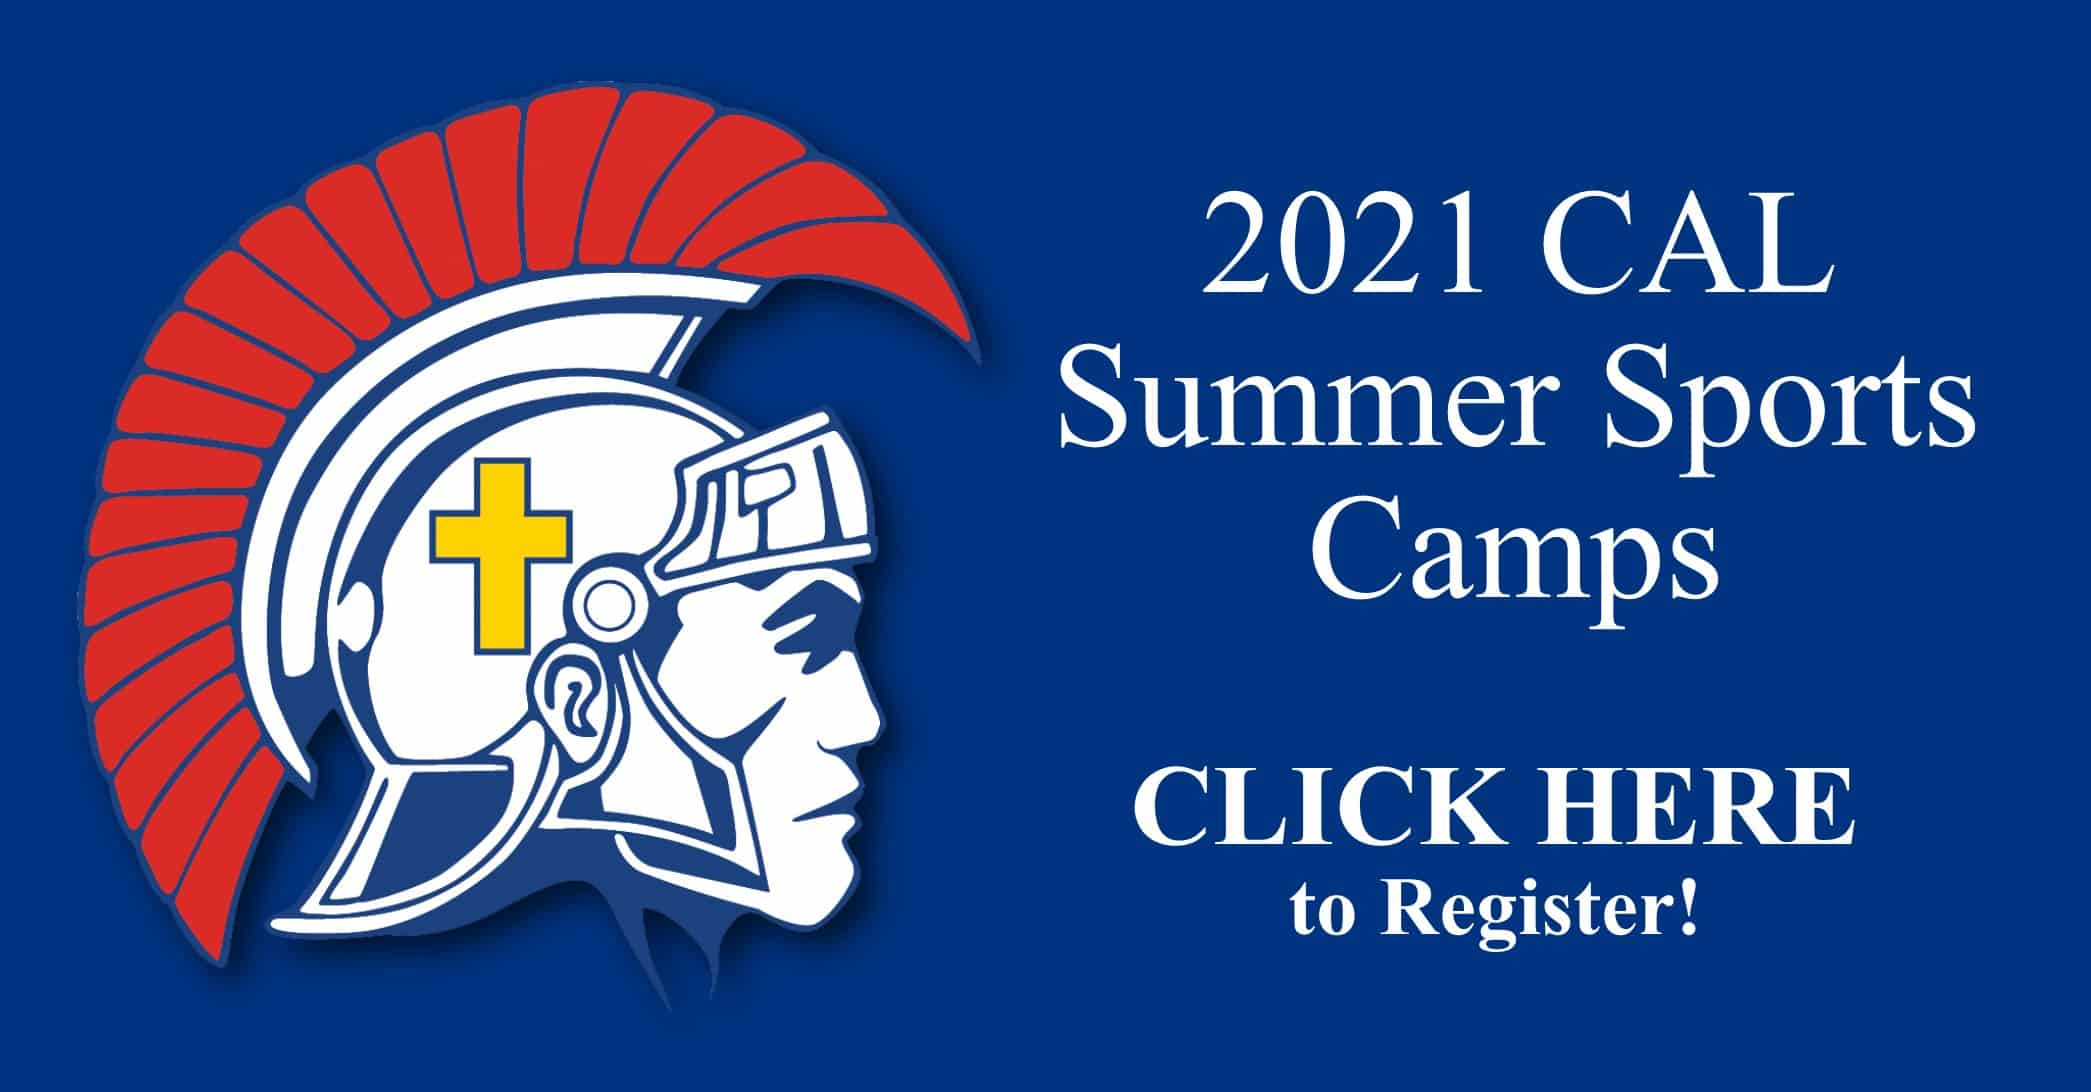 Christian Academy School System   Christian Academy of Louisville   Athletics   2021 CAL Summer Sports Camps   Click to Register